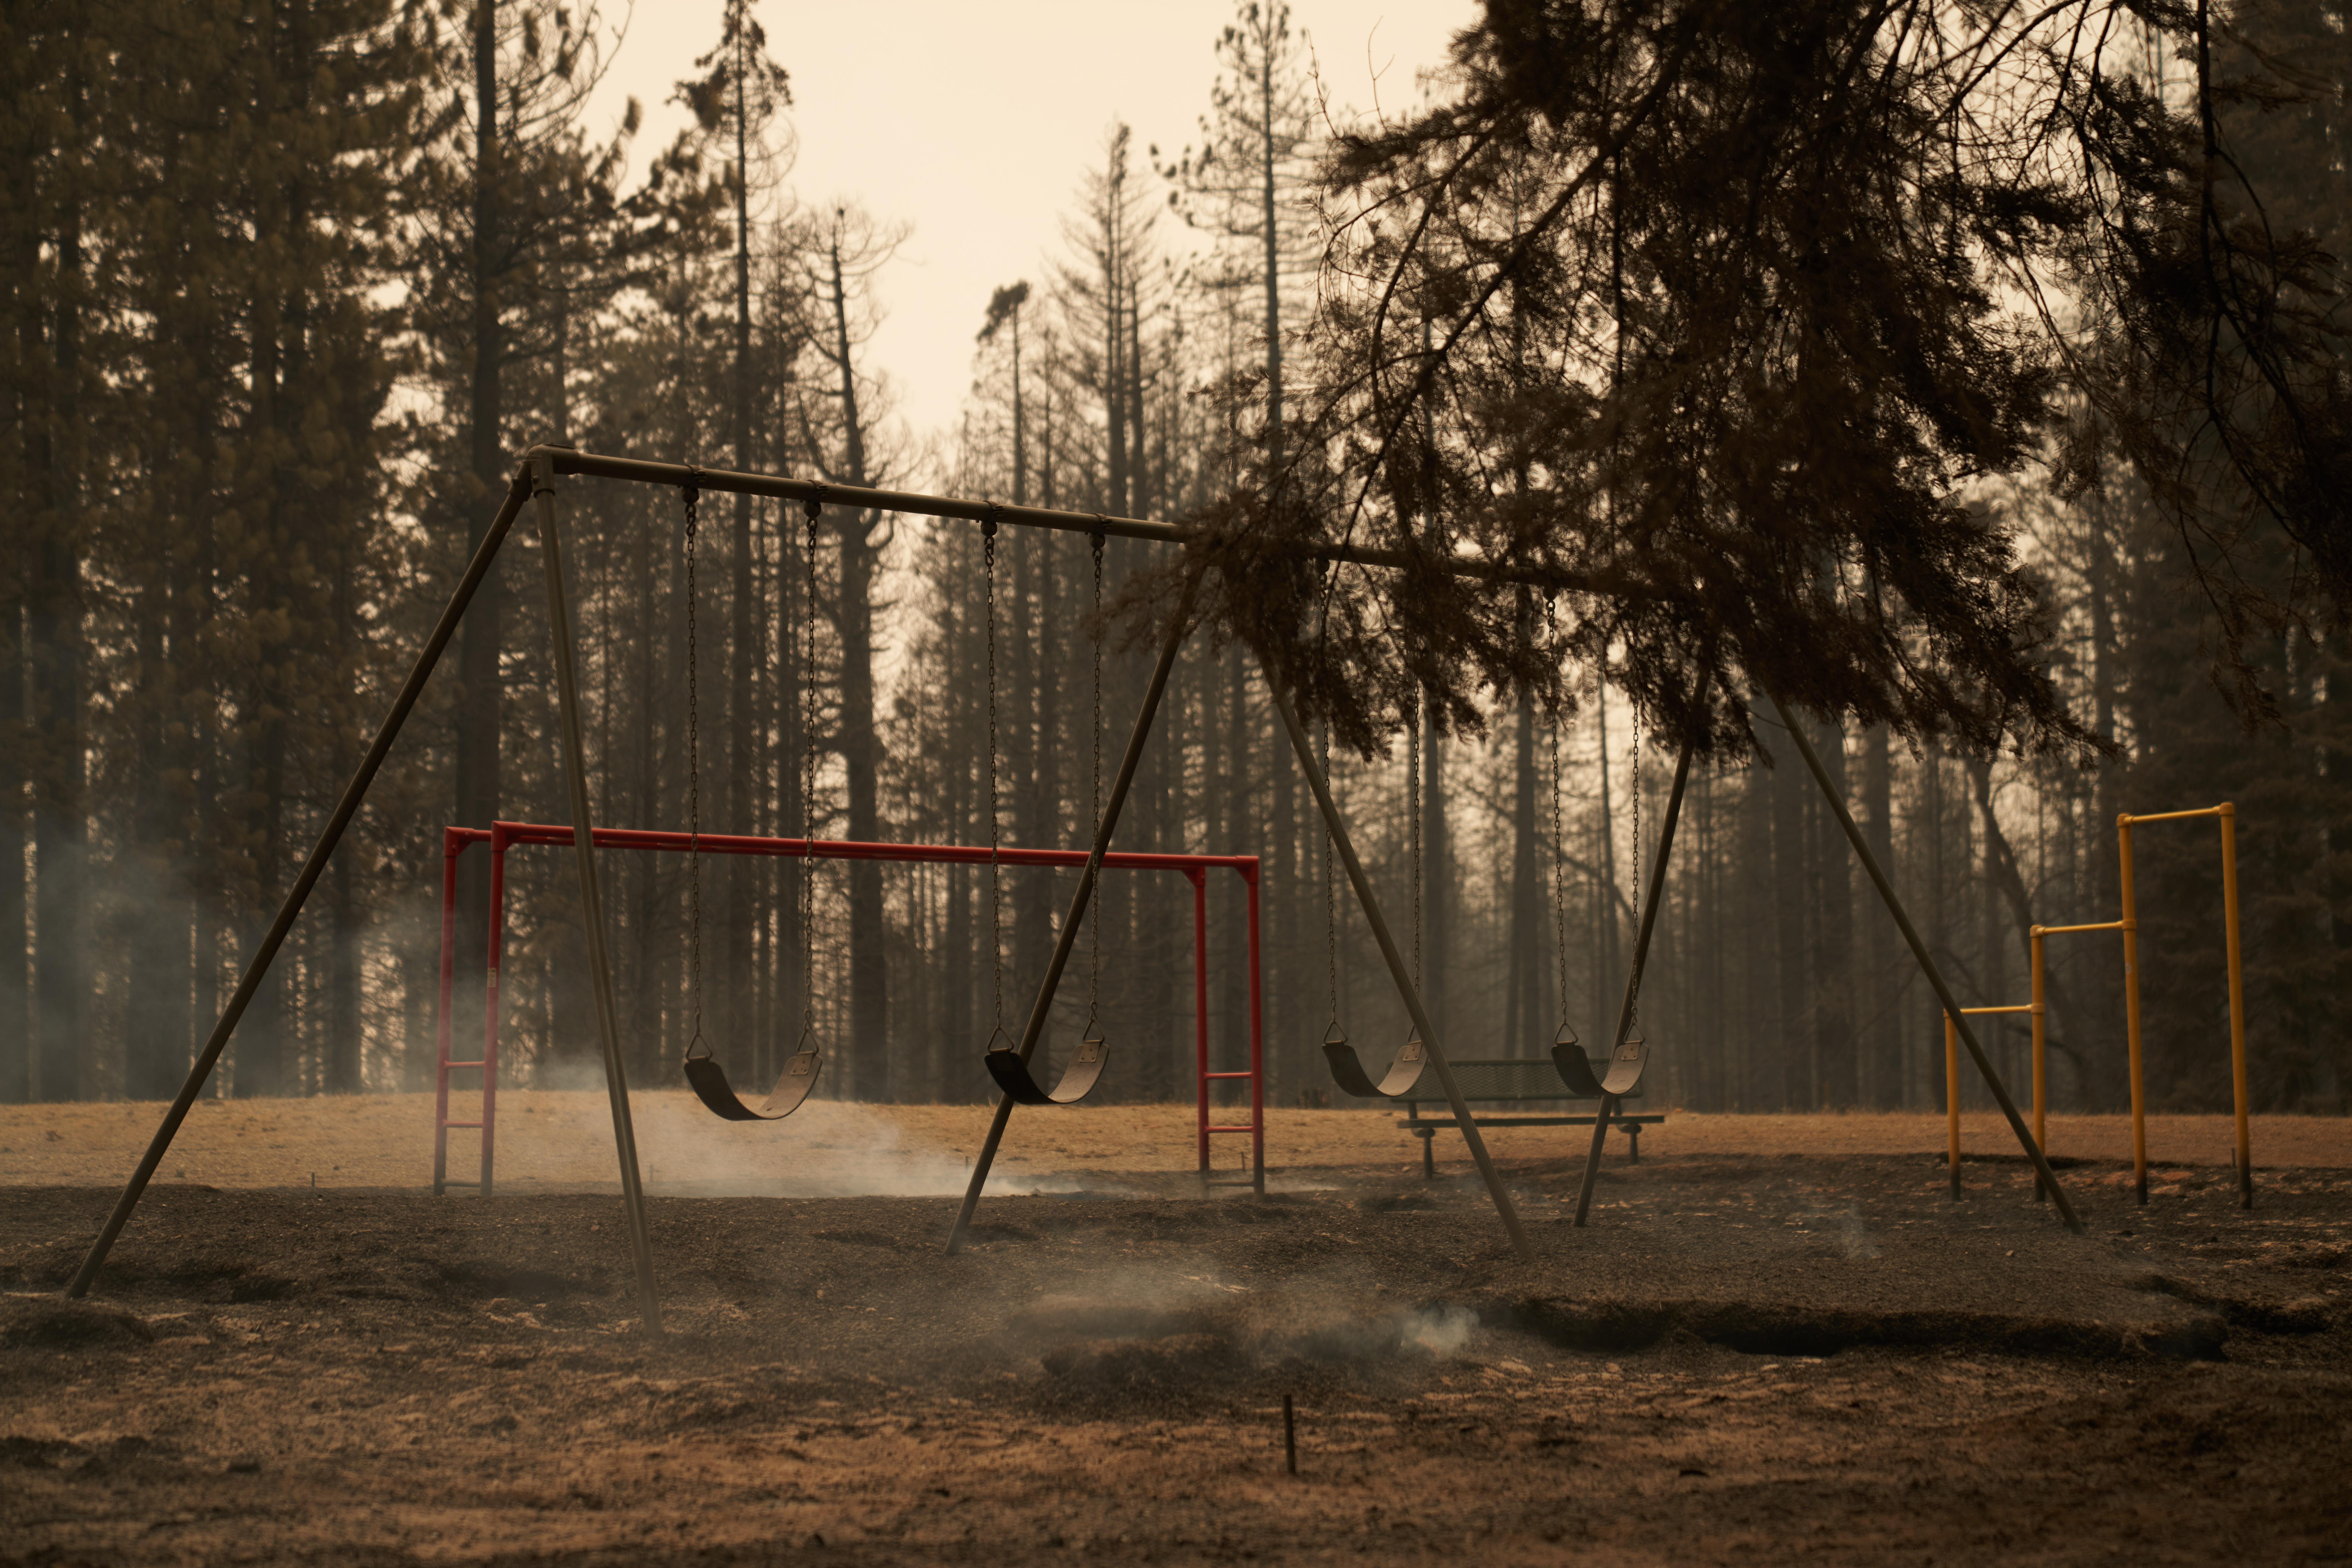 Caldor fire- GRIZZLY FLATS